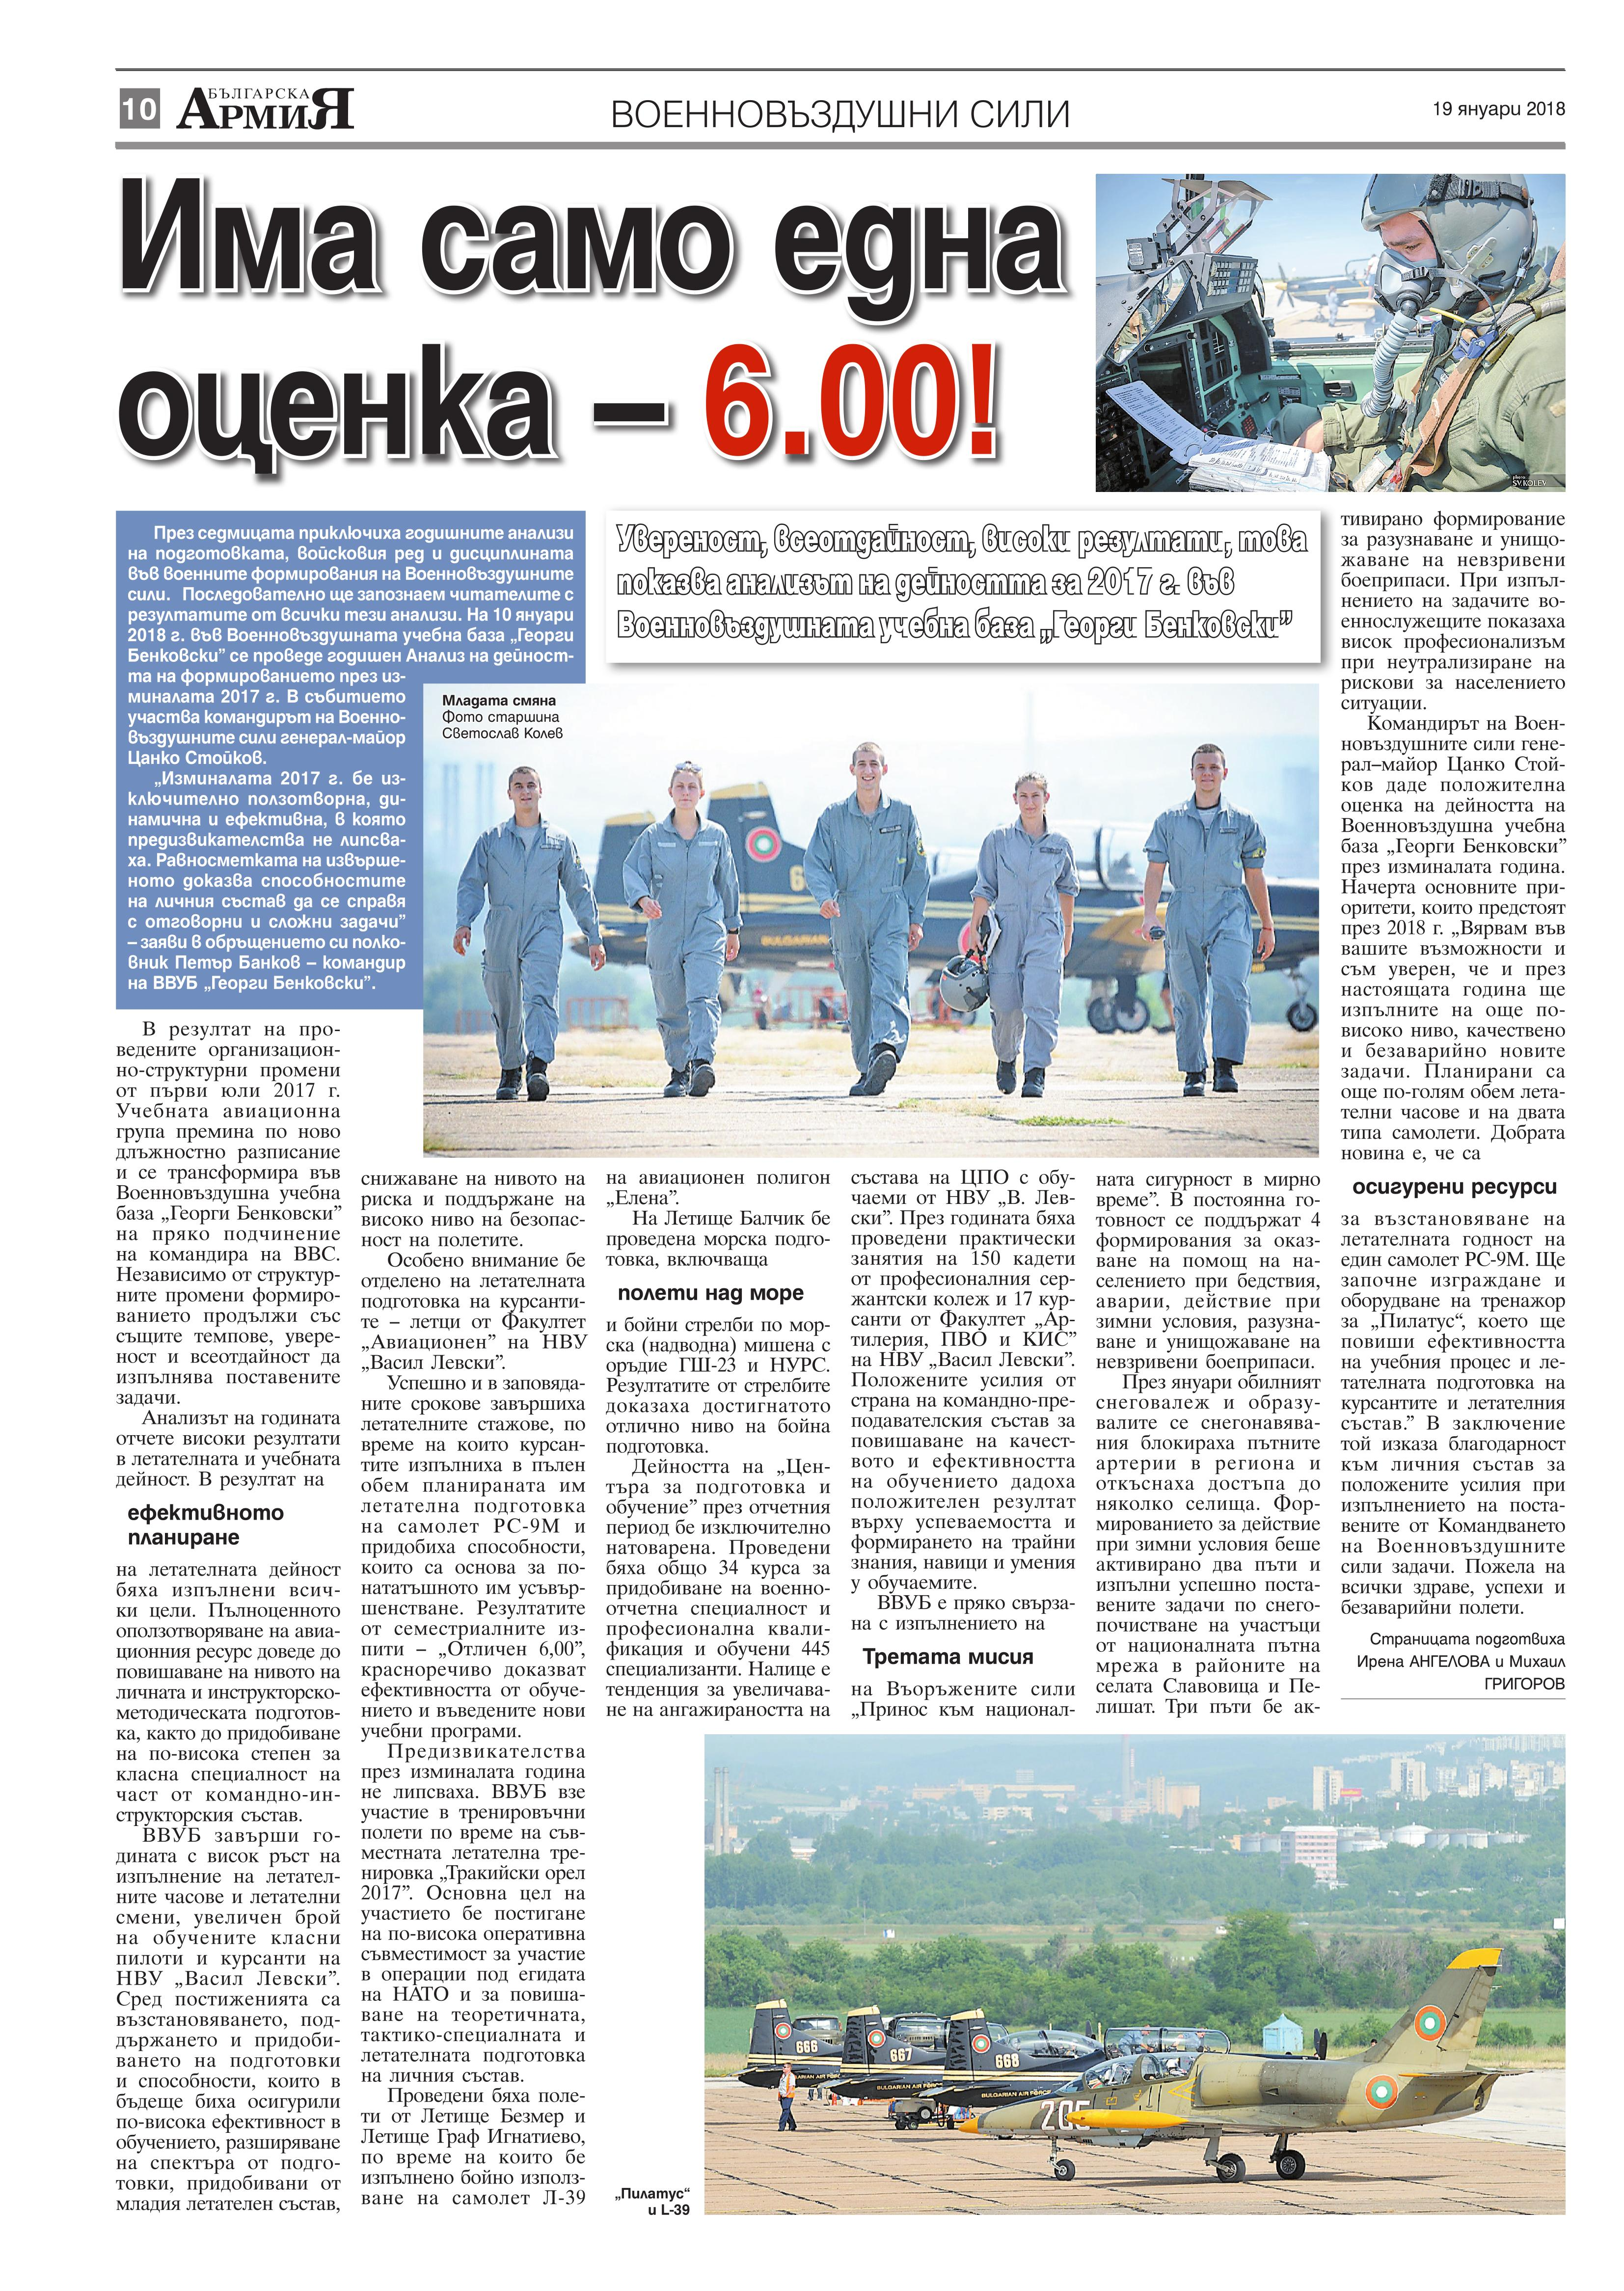 http://armymedia.bg/wp-content/uploads/2015/06/10.page1_-37.jpg